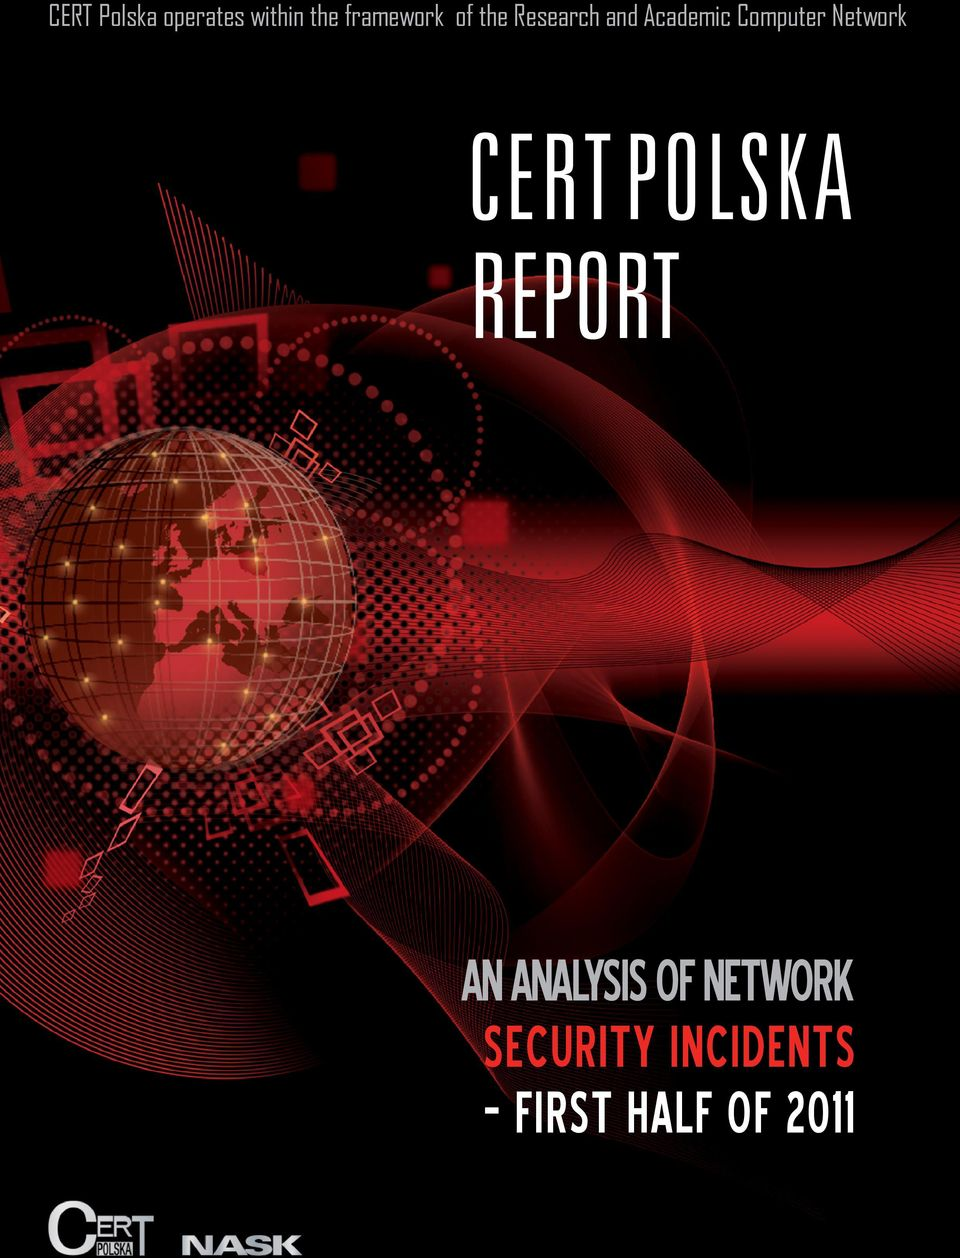 Network CERT POLSKA REPORT AN ANALYSIS OF